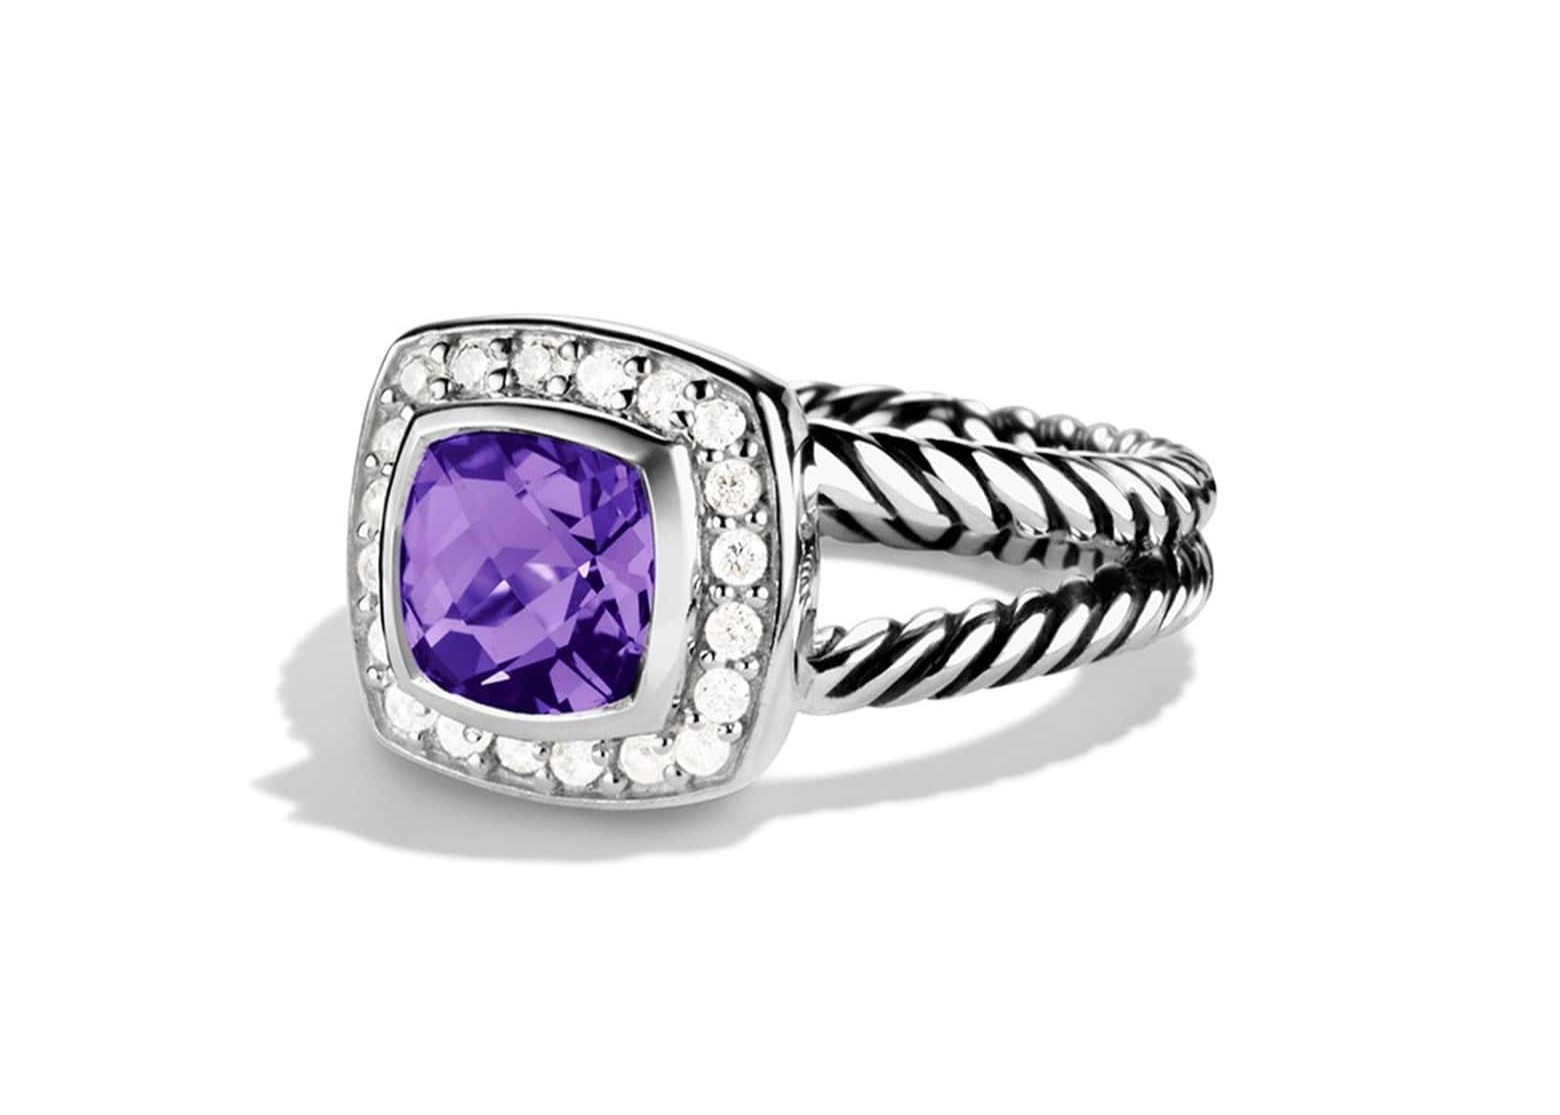 david yurman ring.jpg